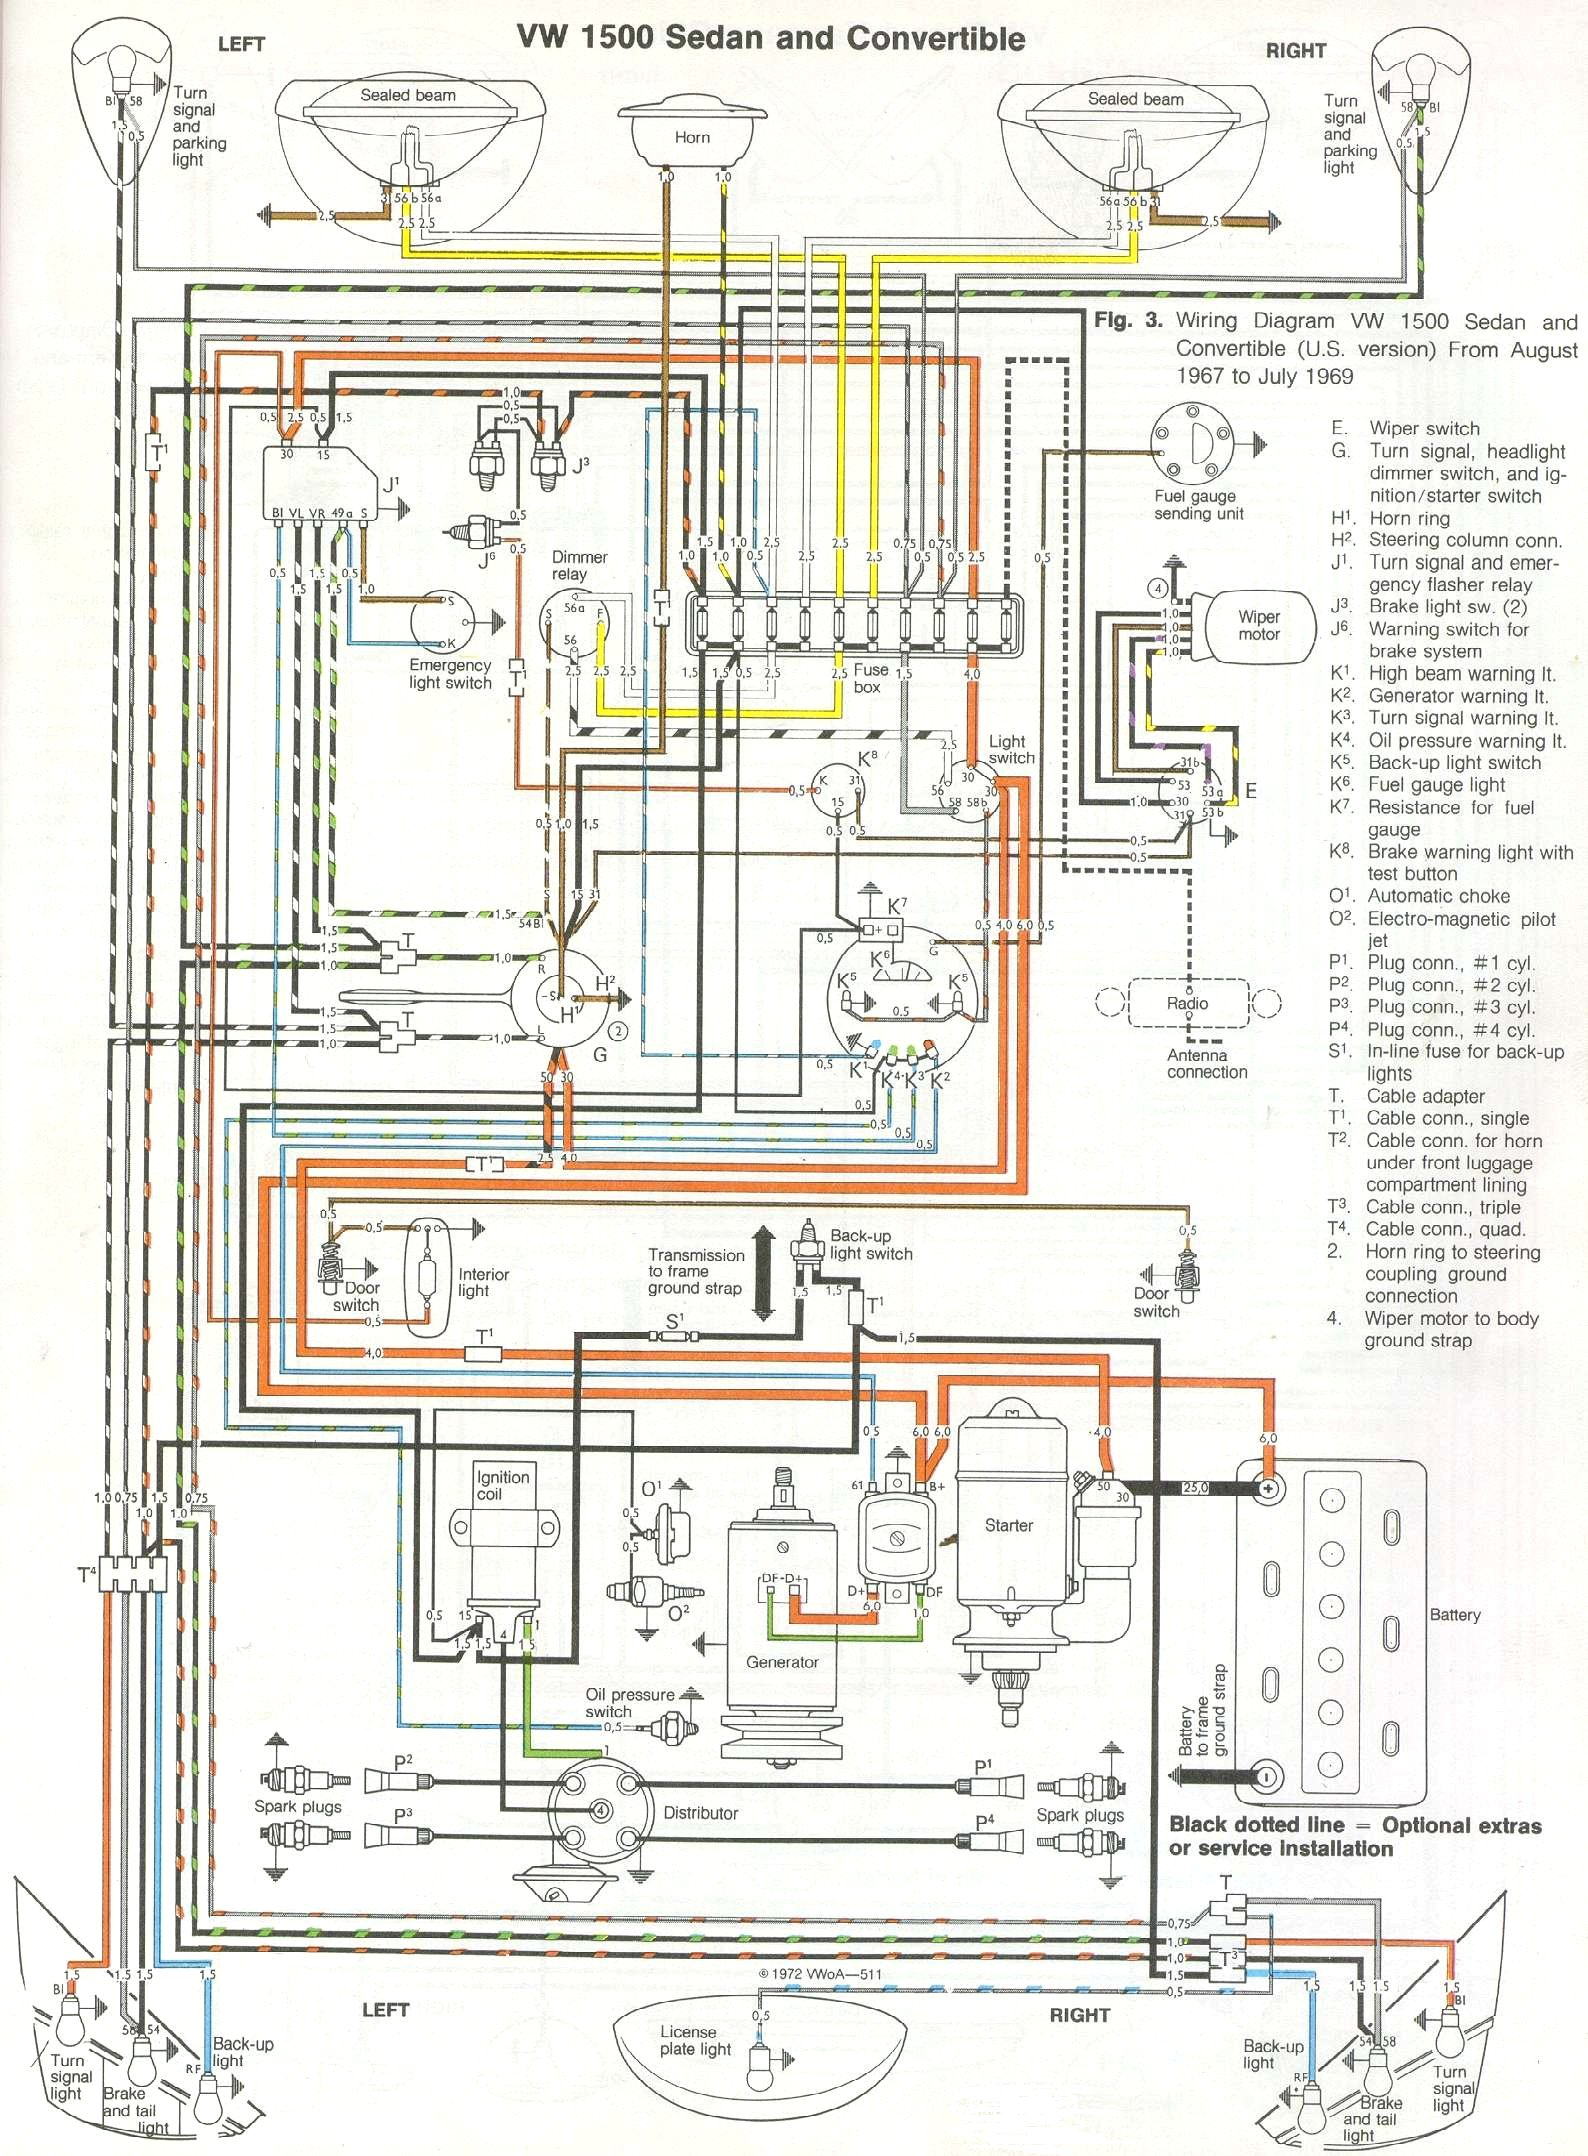 bug_6869 thesamba com type 1 wiring diagrams 1973 vw super beetle wiring diagram at sewacar.co